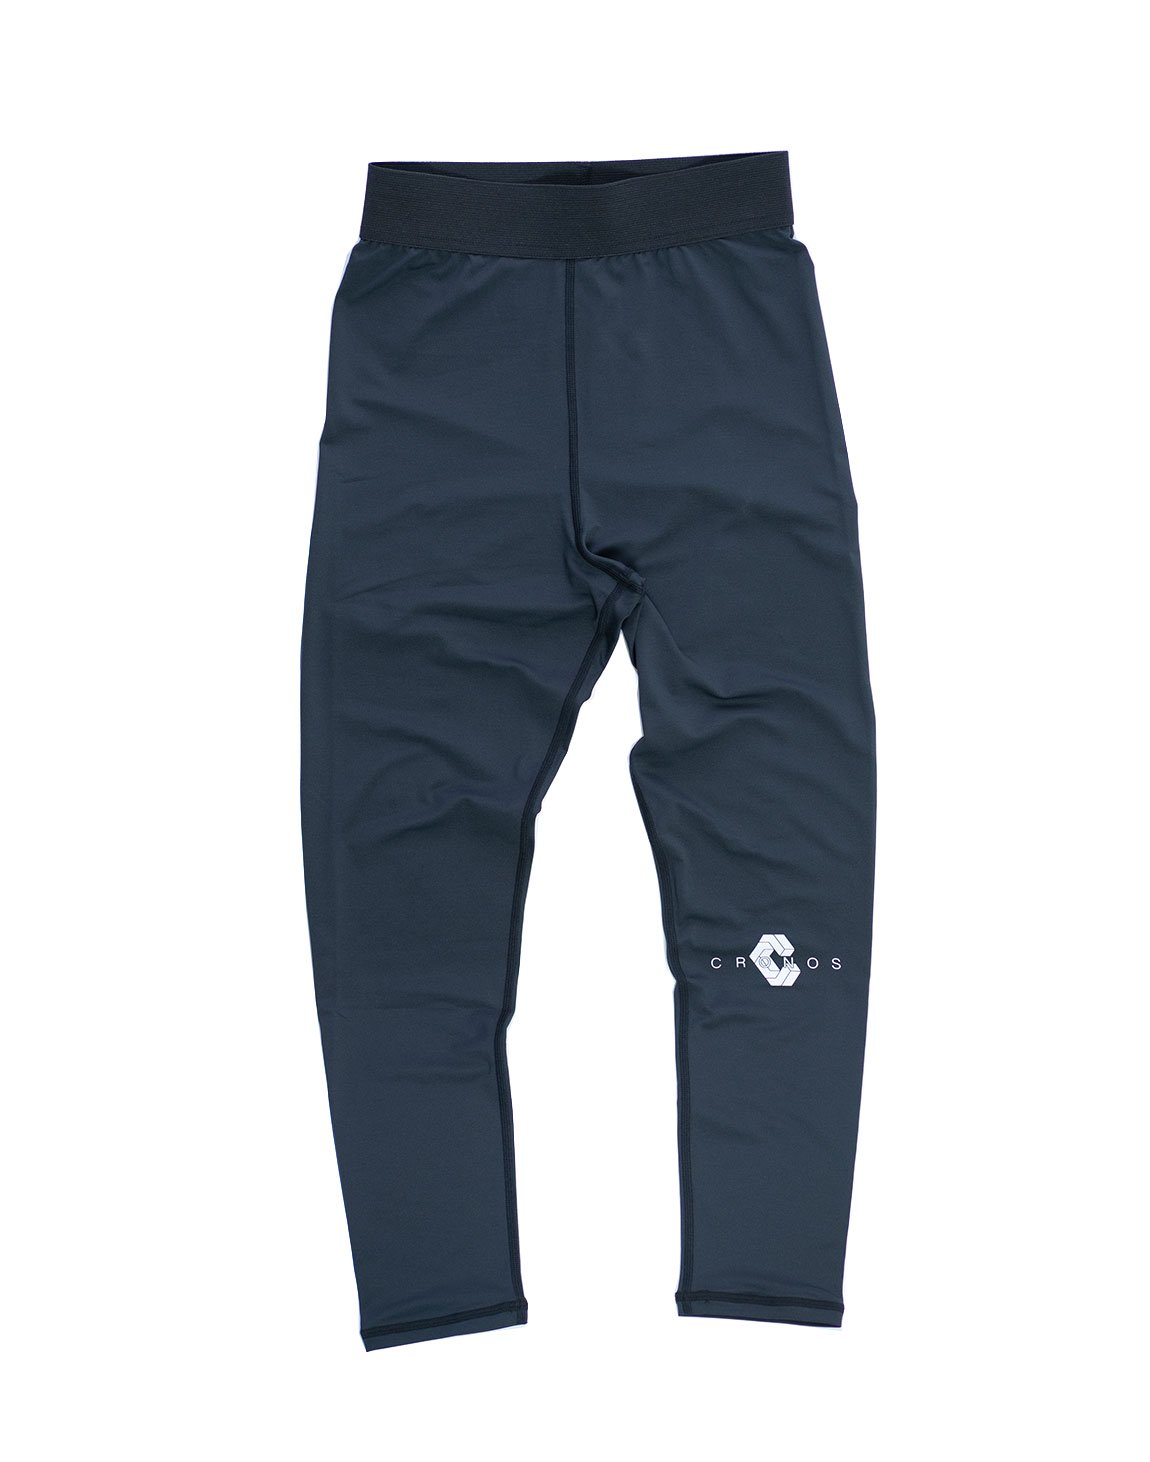 <img class='new_mark_img1' src='https://img.shop-pro.jp/img/new/icons1.gif' style='border:none;display:inline;margin:0px;padding:0px;width:auto;' />CRONOS KNEE LOGO LEGGINGS